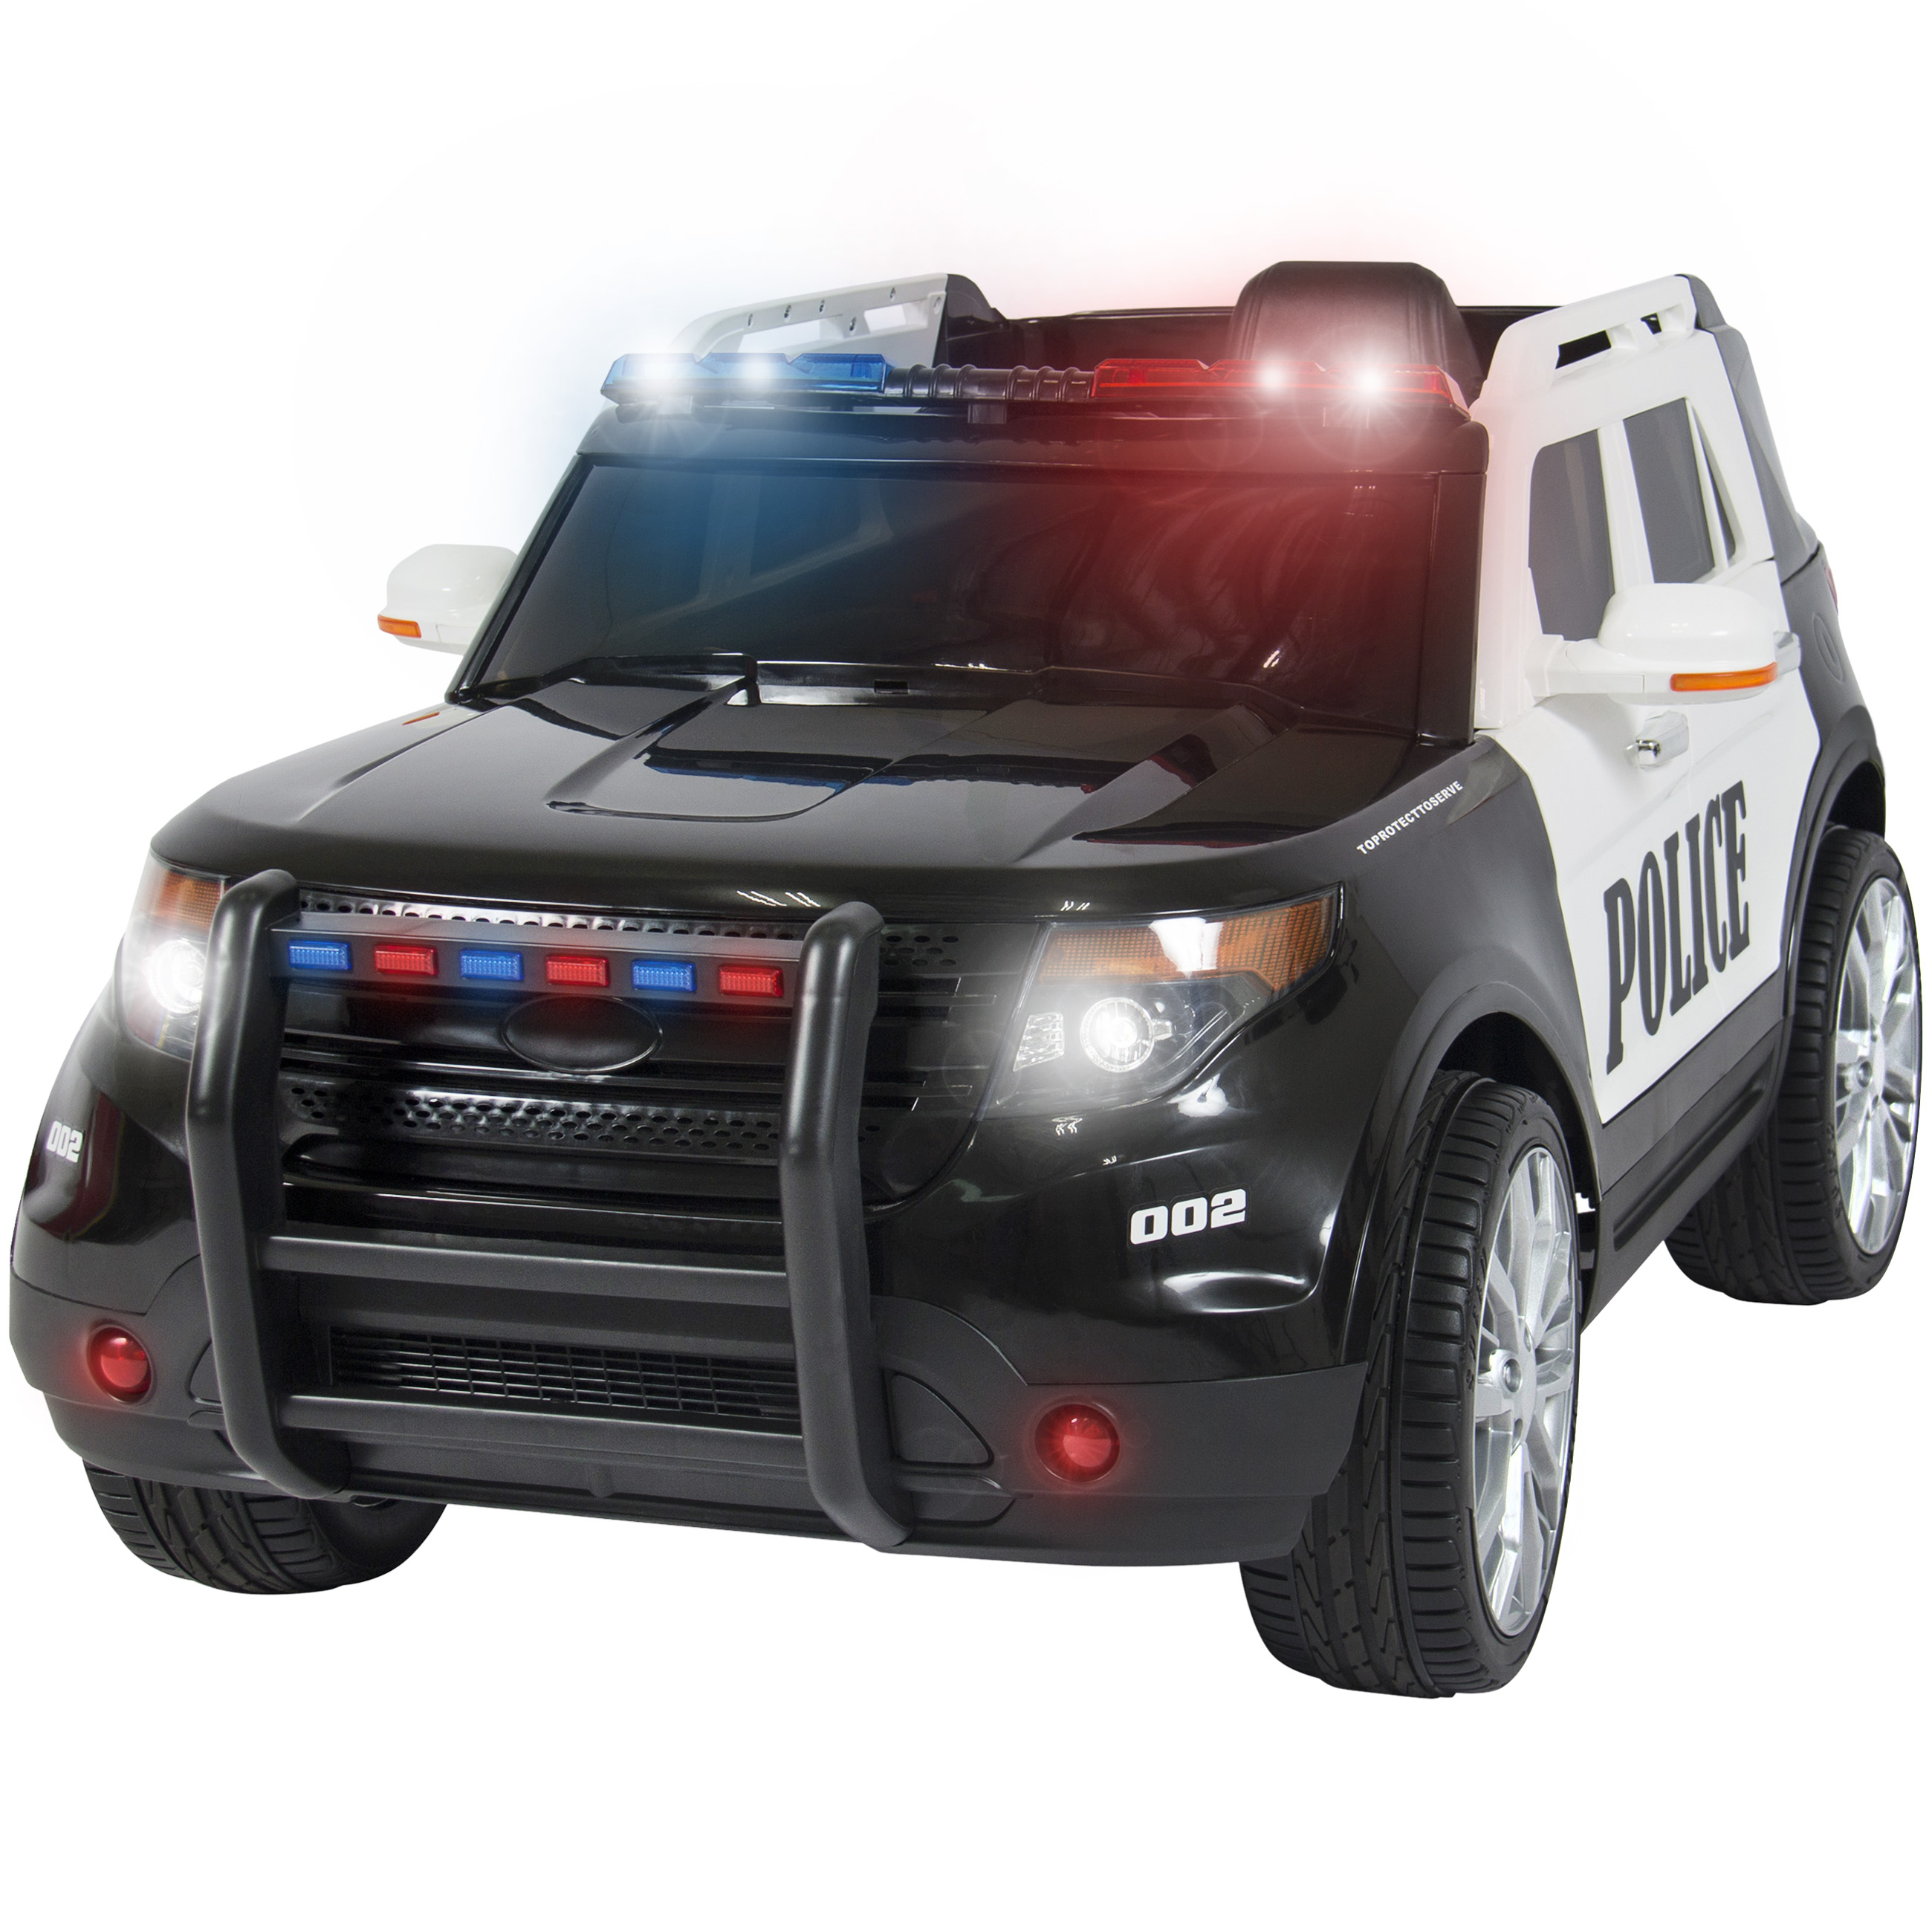 Best Choice Products 12V Ride On Car Police Car w  Remote Control, 2 Speeds, LED Lights by